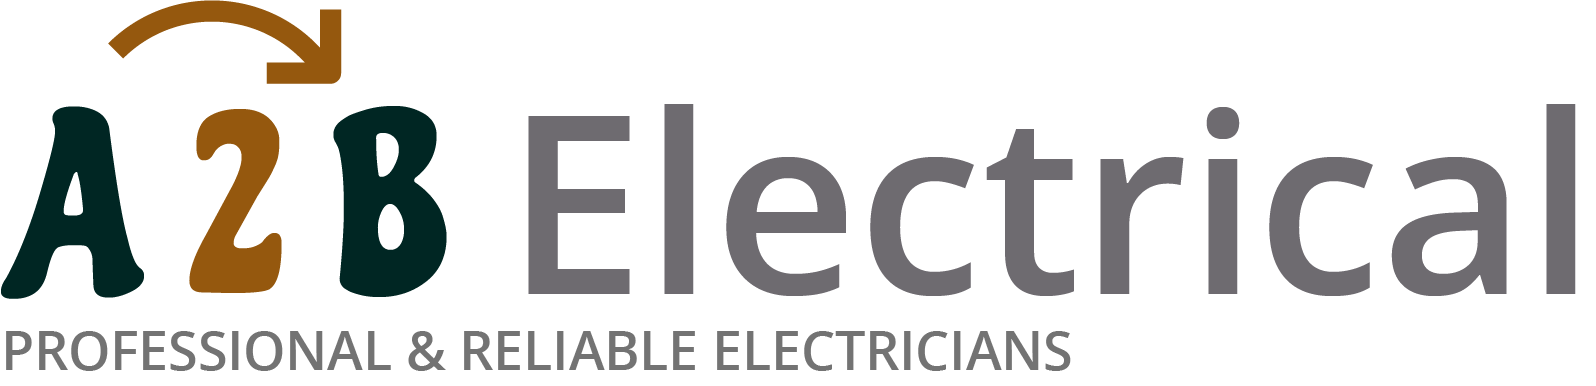 If you have electrical wiring problems in Bexleyheath, we can provide an electrician to have a look for you.